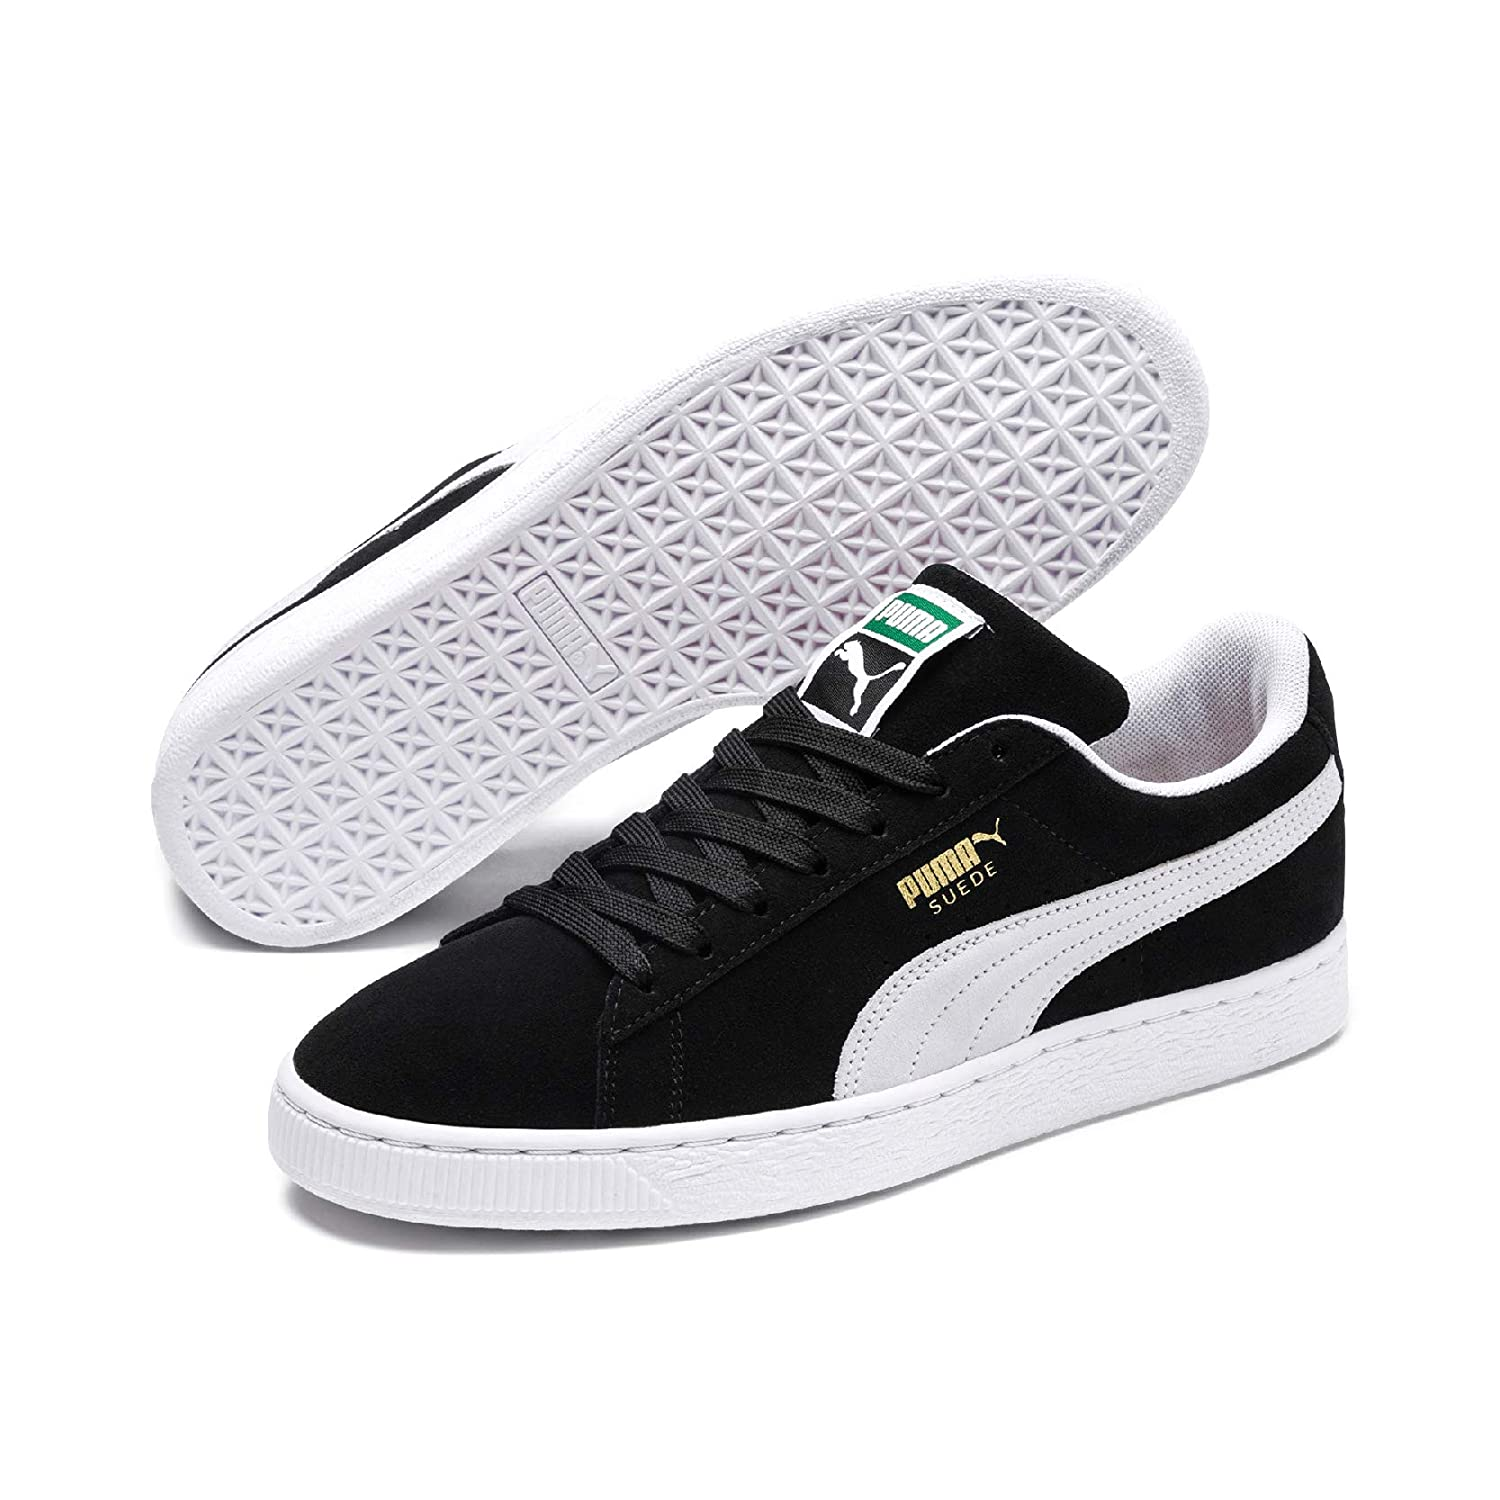 revendeur 27ada 8a27b PUMA Select Men's Suede Classic Plus Sneakers